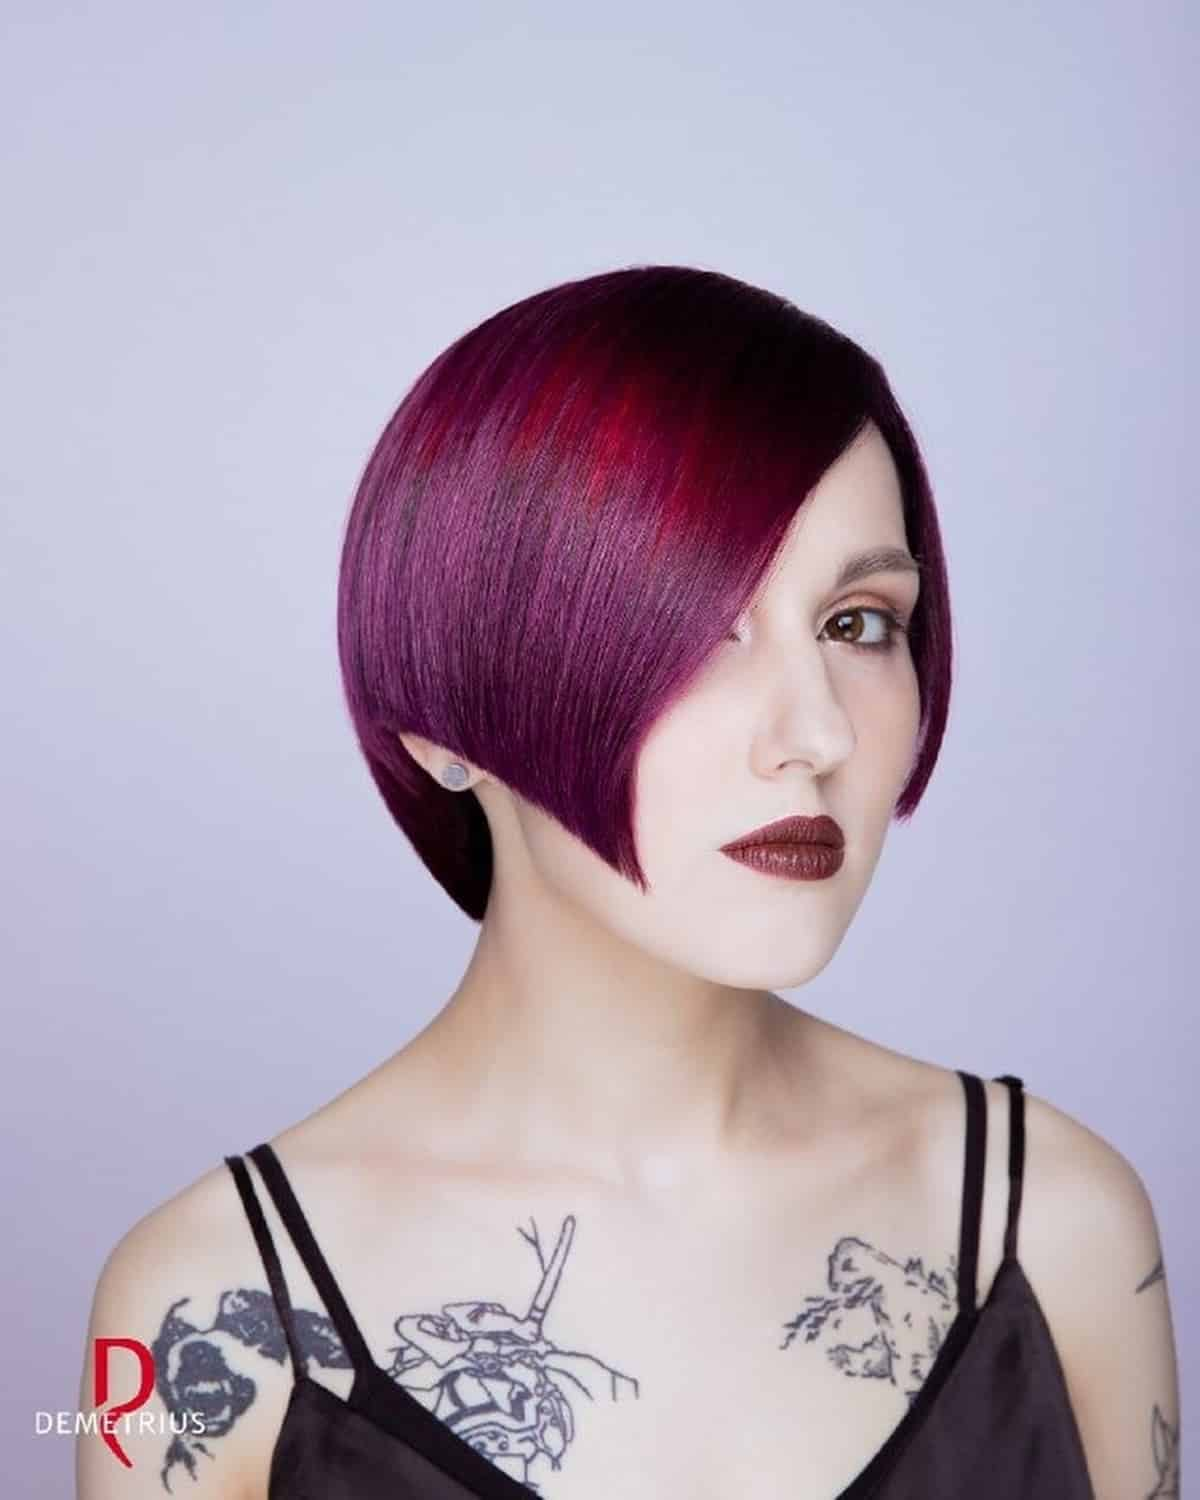 Short gothic asymmetrical cuts are extremely unique. Sharp lines and soft transitions create the perfect shape. Try adding in a dark fashion color to enhance the gothic appearance.